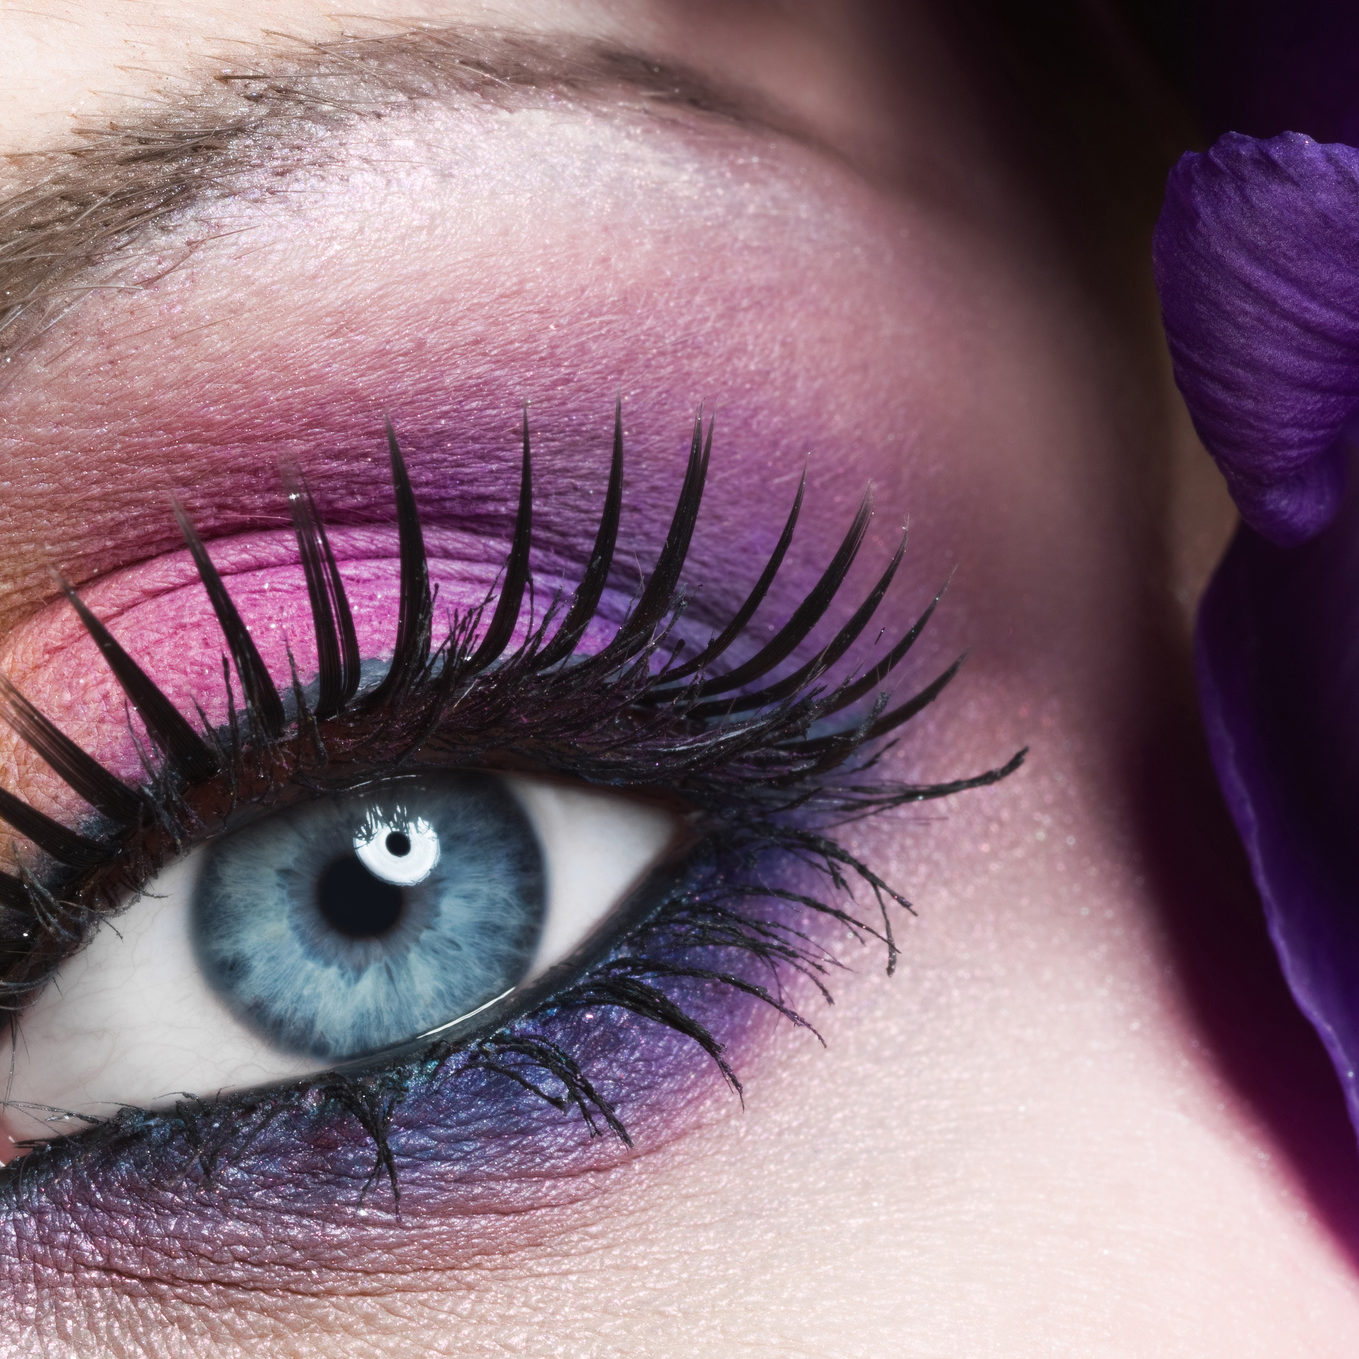 Woman eye with colorful make-up and long false eyelashes - gerber flower